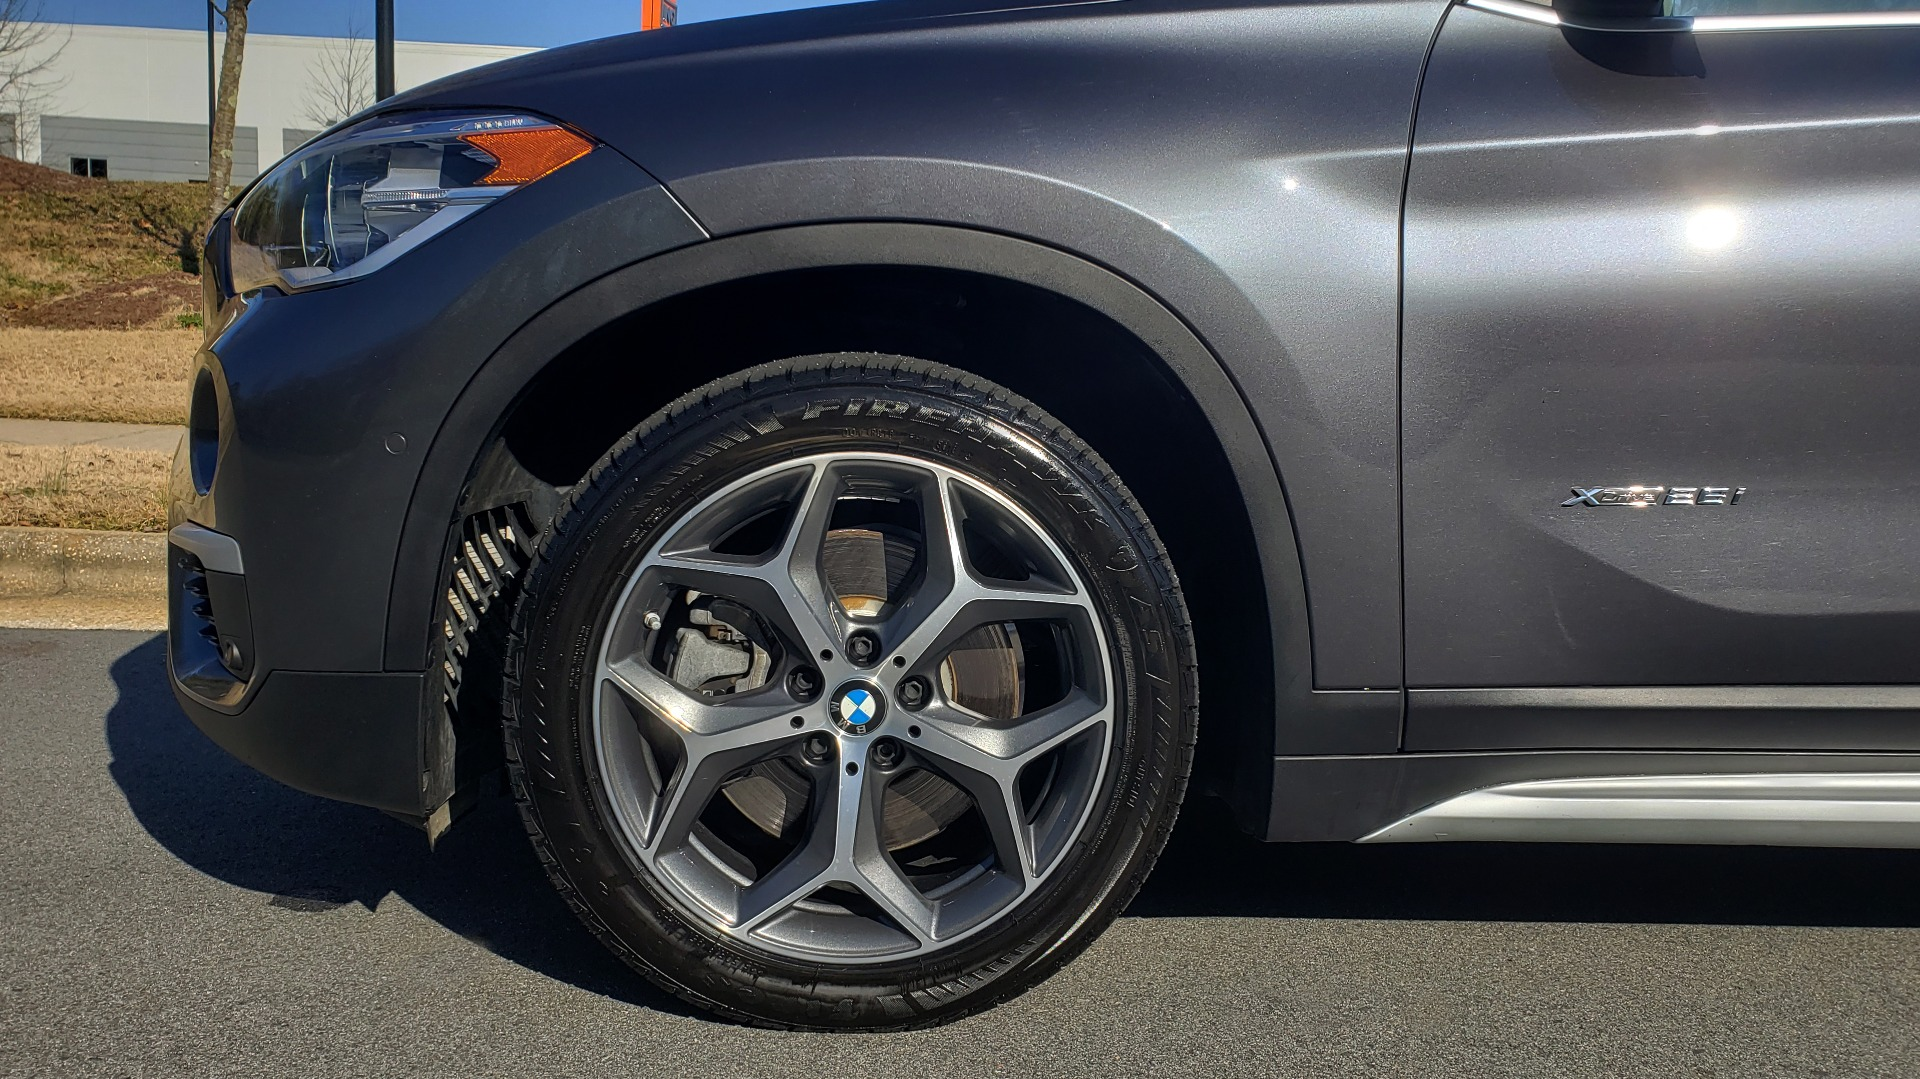 Used 2017 BMW X1 XDRIVE28I / PREM / TECH / DRVR ASST PLUS / COLD WTHR / REARVIEW for sale Sold at Formula Imports in Charlotte NC 28227 80